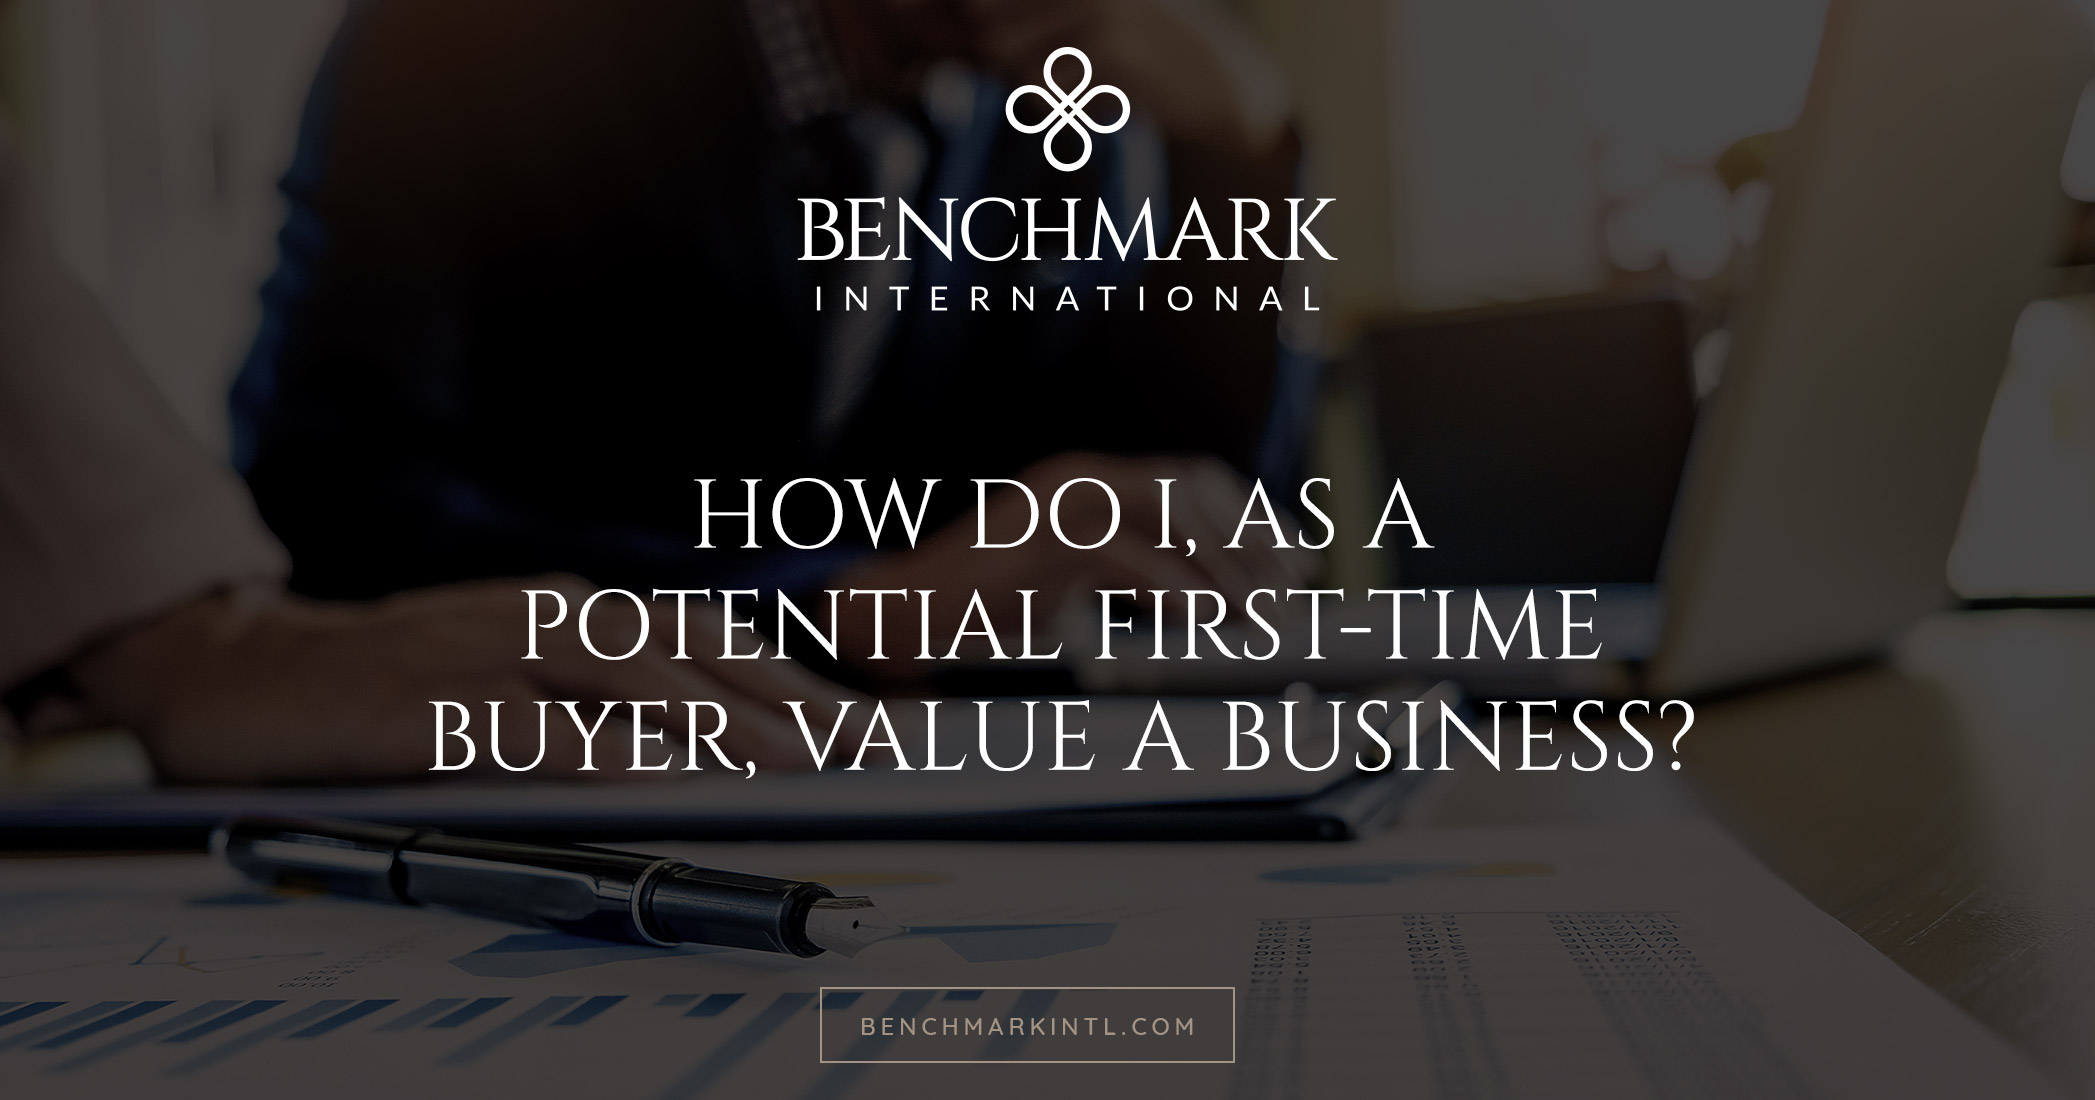 How Do I, as a Potential First-time Buyer, Value a Business?